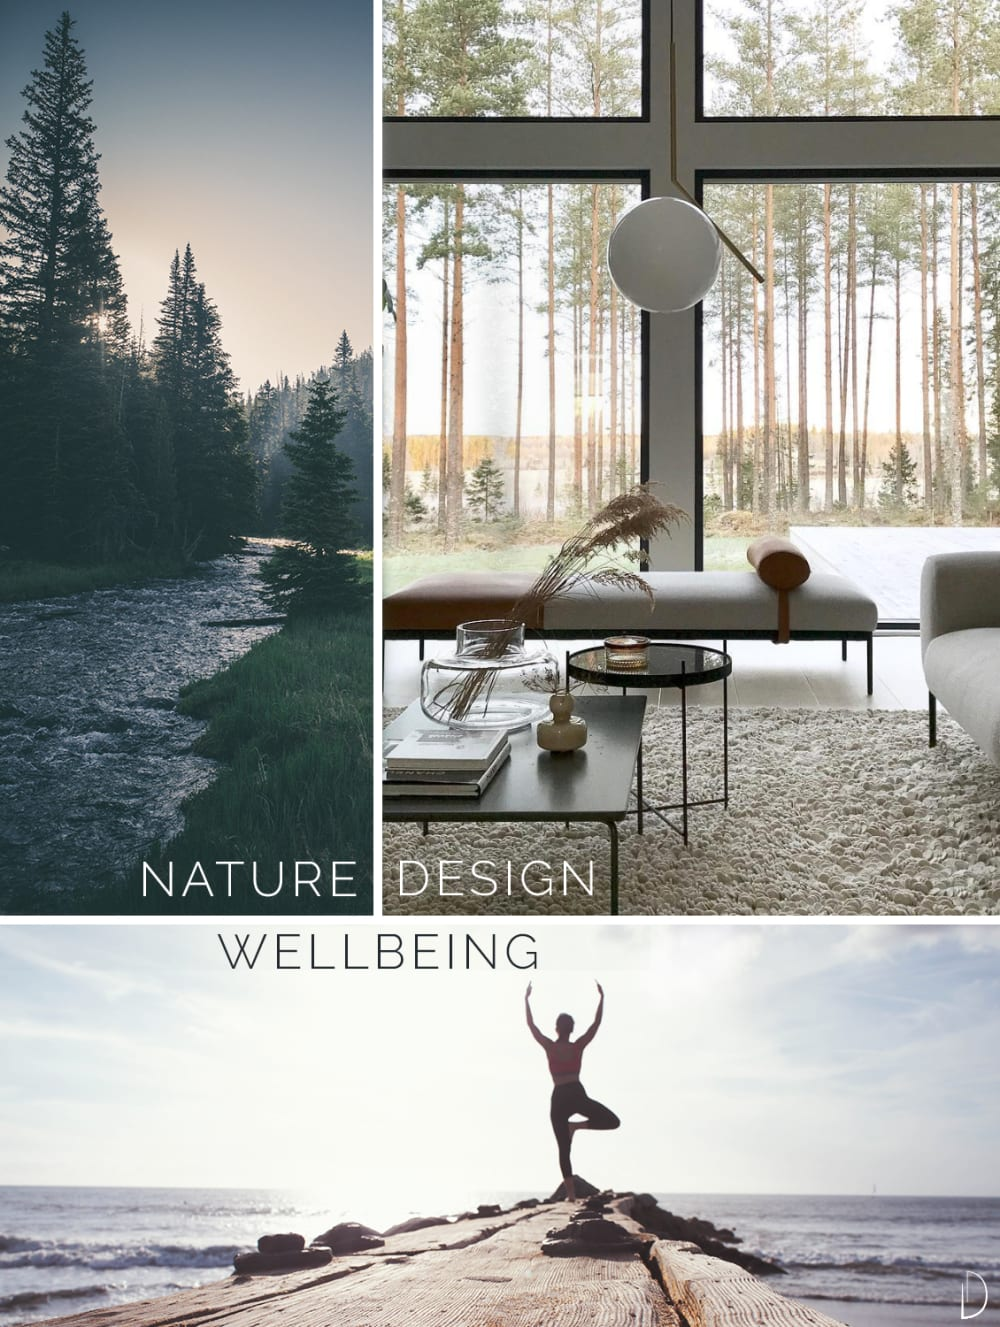 """Biophilic moodboard showing the relationship between nature (a forest), wellbeing (a girl doing yoga in front of a lake) and biophilic interior design (a living room with huge windows looking outdoors).<span class=""""sr-only""""> (opened in a new window/tab)</span>"""